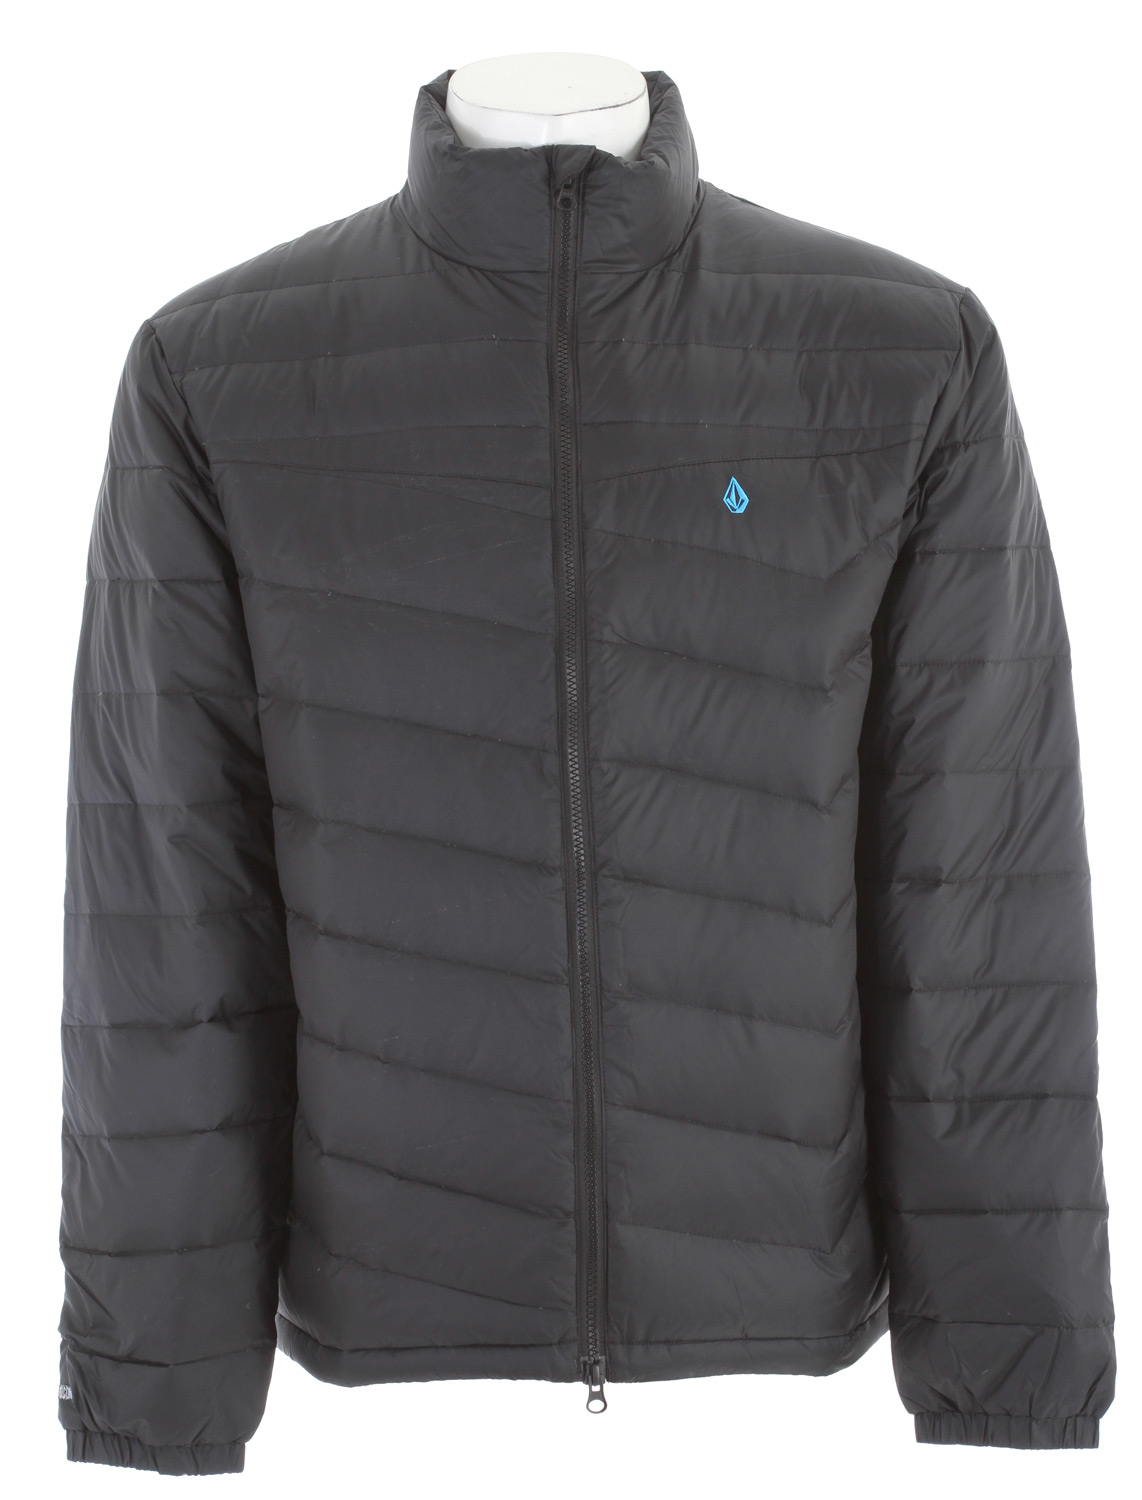 Surf Key Features of the Volcom Puff Puff Give Jacket: Pocket Packable Puff Jacket with duck down fill Core collection 100% Nylon Ripstop w/ Duck Down Fill - $95.95